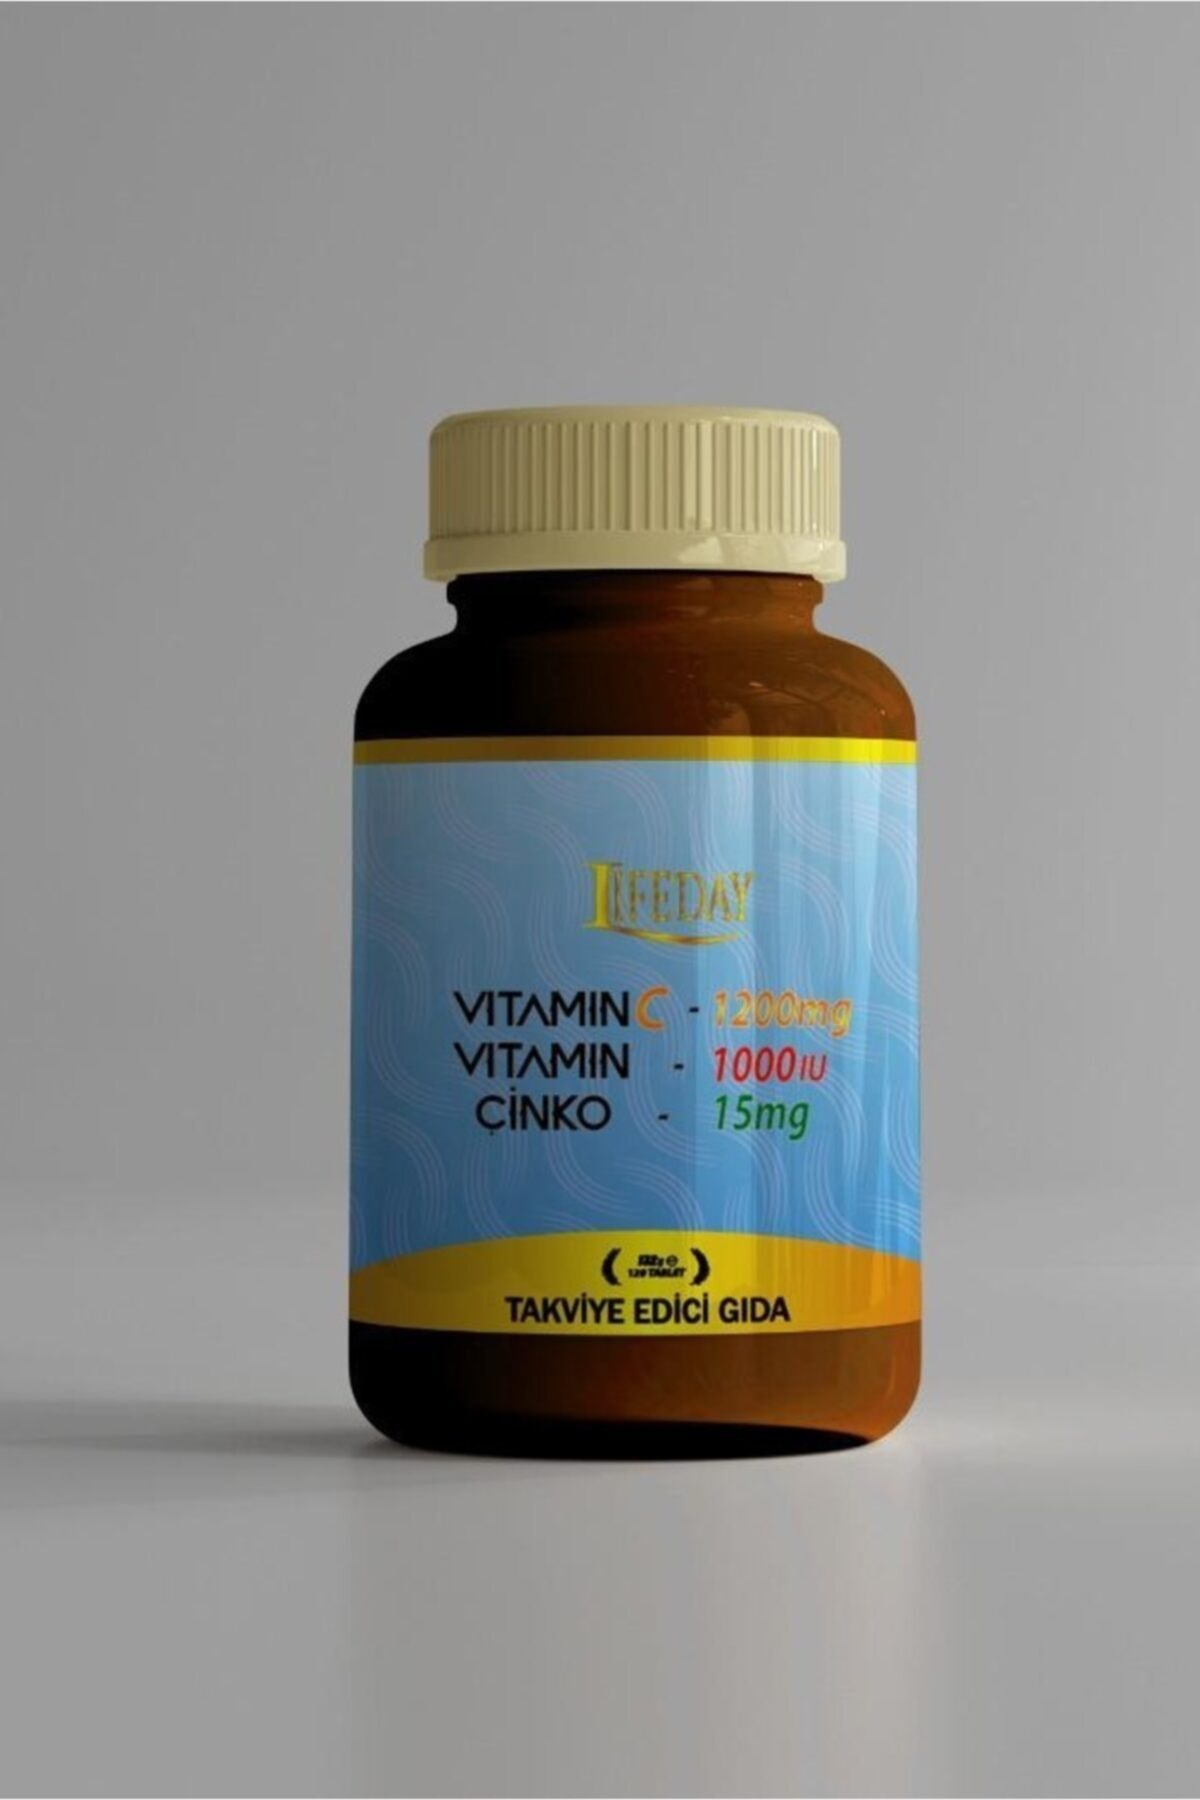 Lifeday Vitamin C Vitamin D Çinko 120 Tablet 1